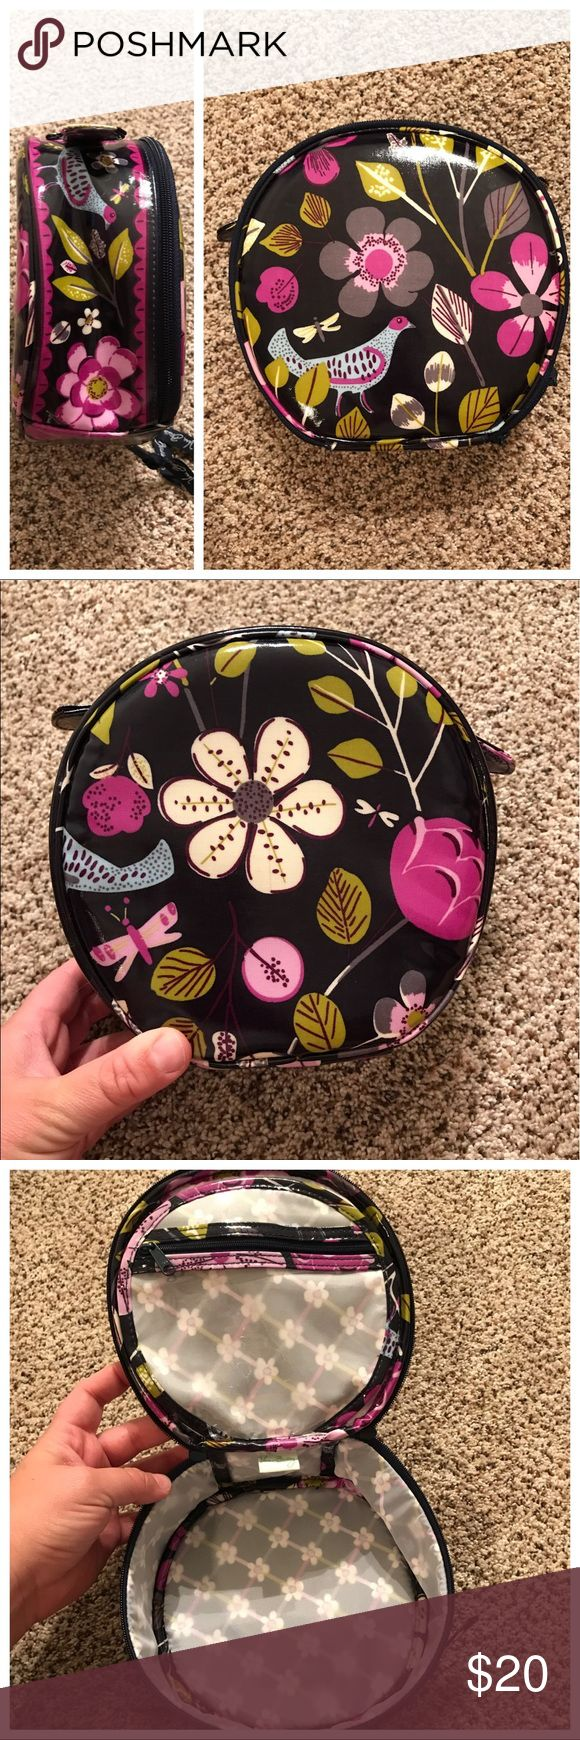 Vera Bradley Travel Case Vera Bradley Travel Case in excellent condition.  Great for cosmetics or travel Size products.  Measurements: across the middle 8 inches and 3 inches tall. Vera Bradley Bags Travel Bags